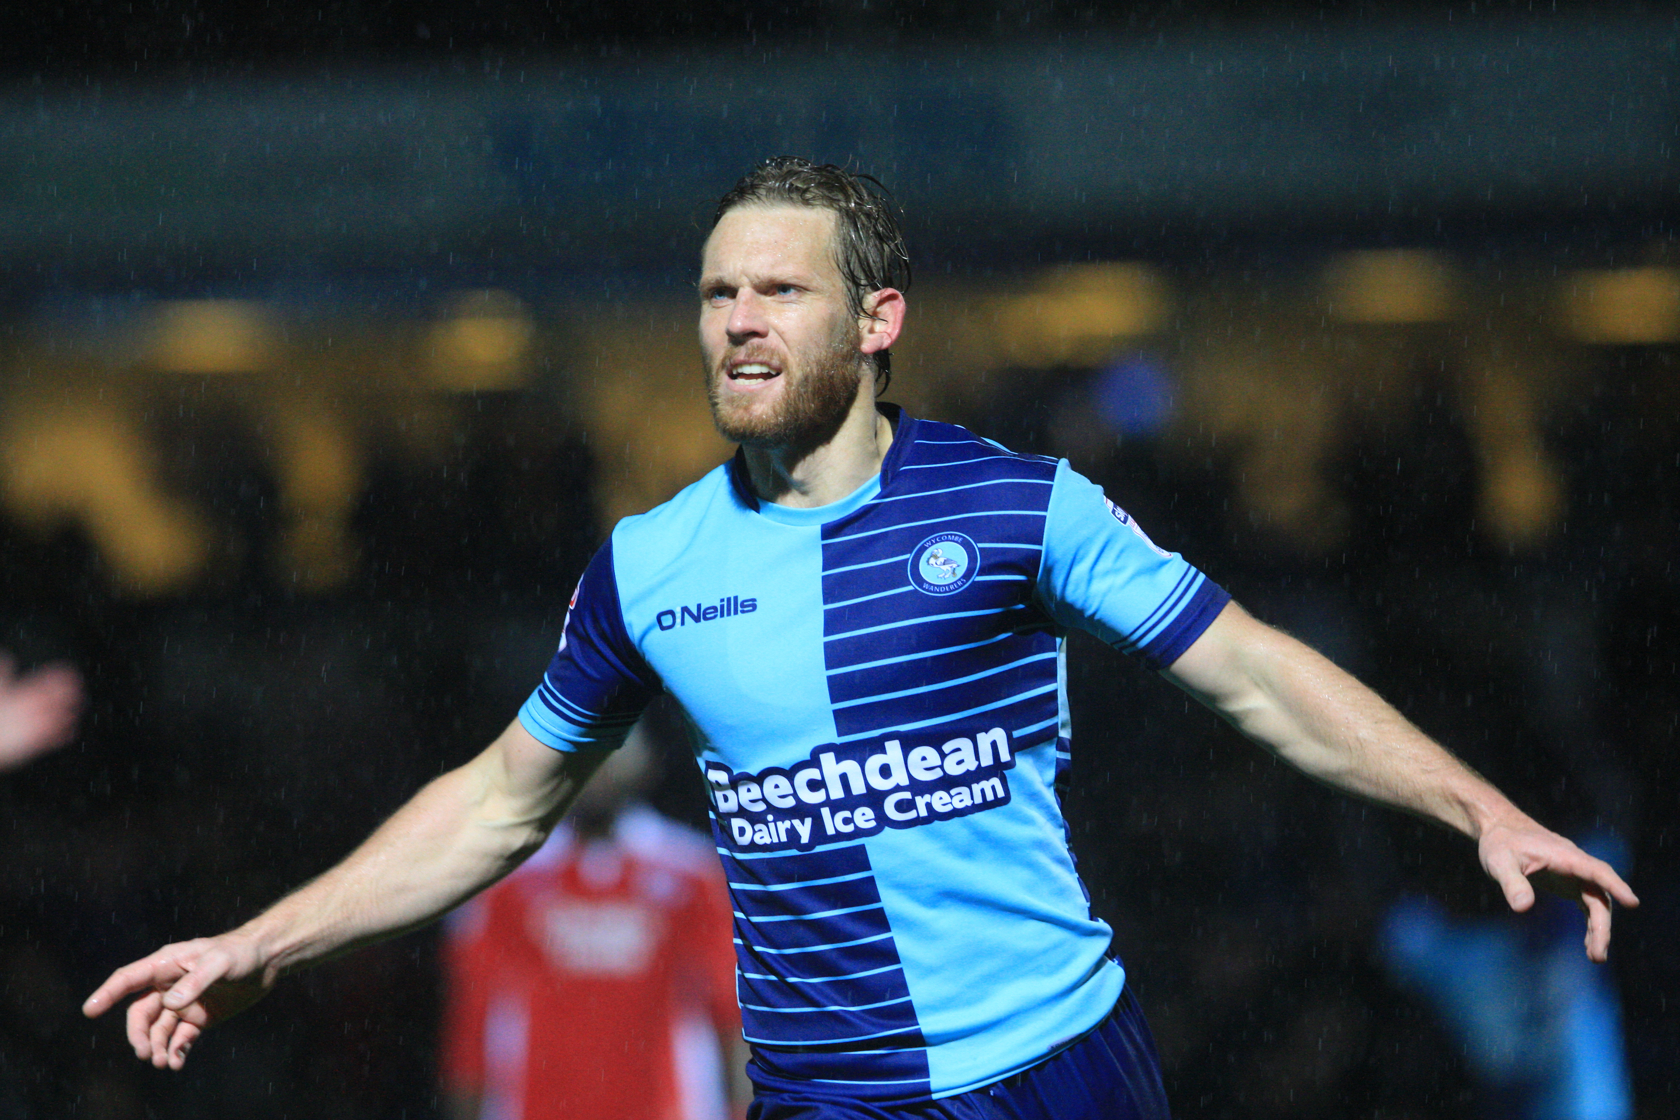 Craig Mackail-Smith scored a hat-trick at the previous meeting in November